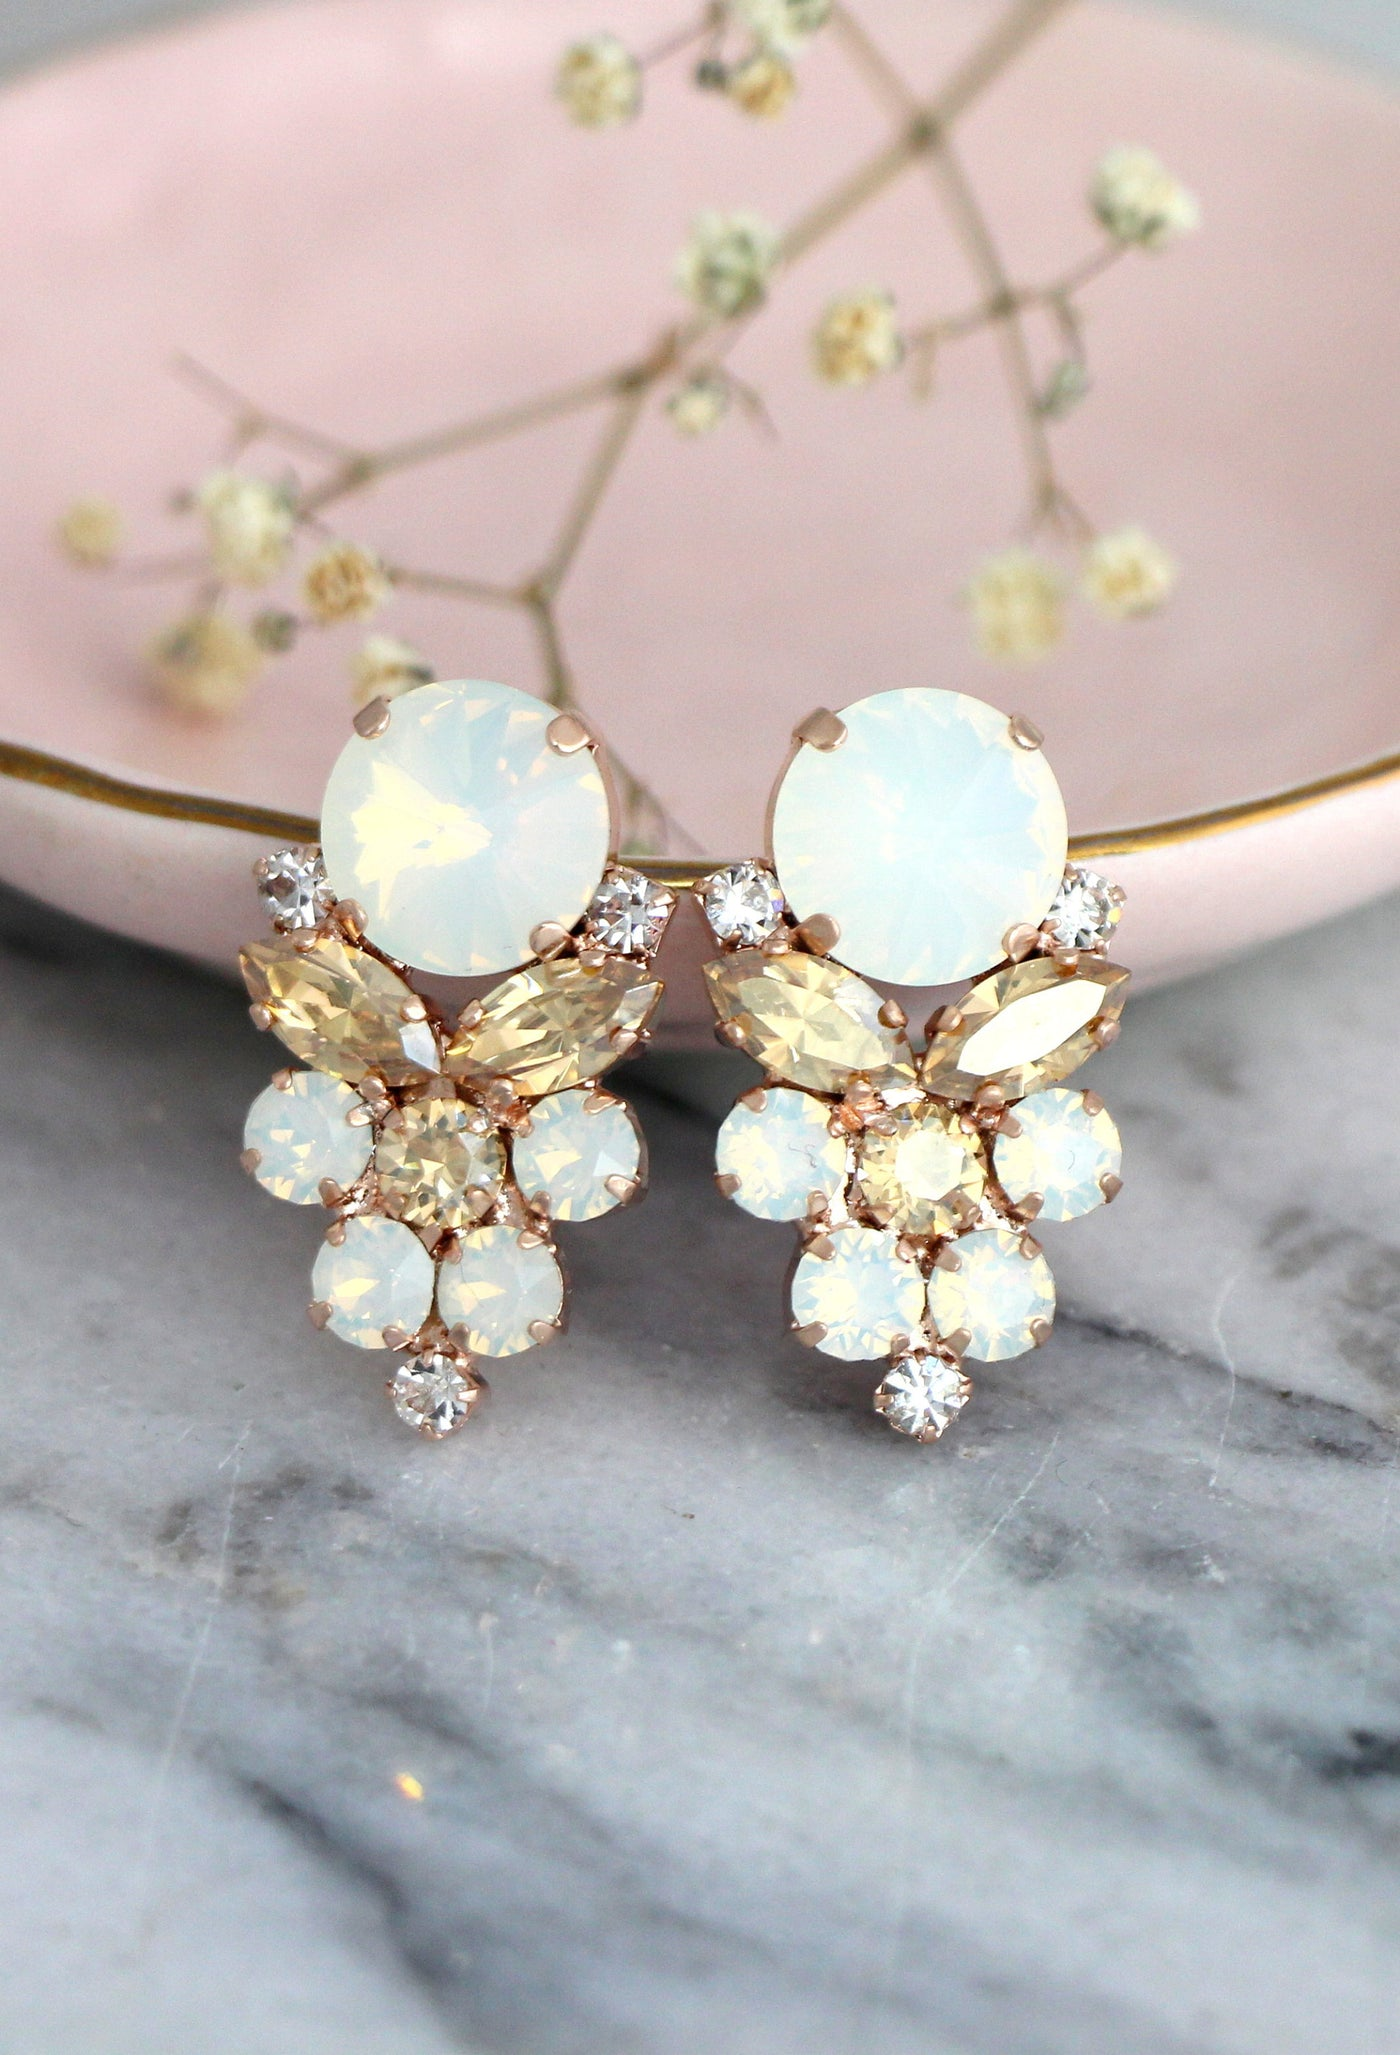 Noy White Opal Champagne Crystal Swarovski Cluster Earrings